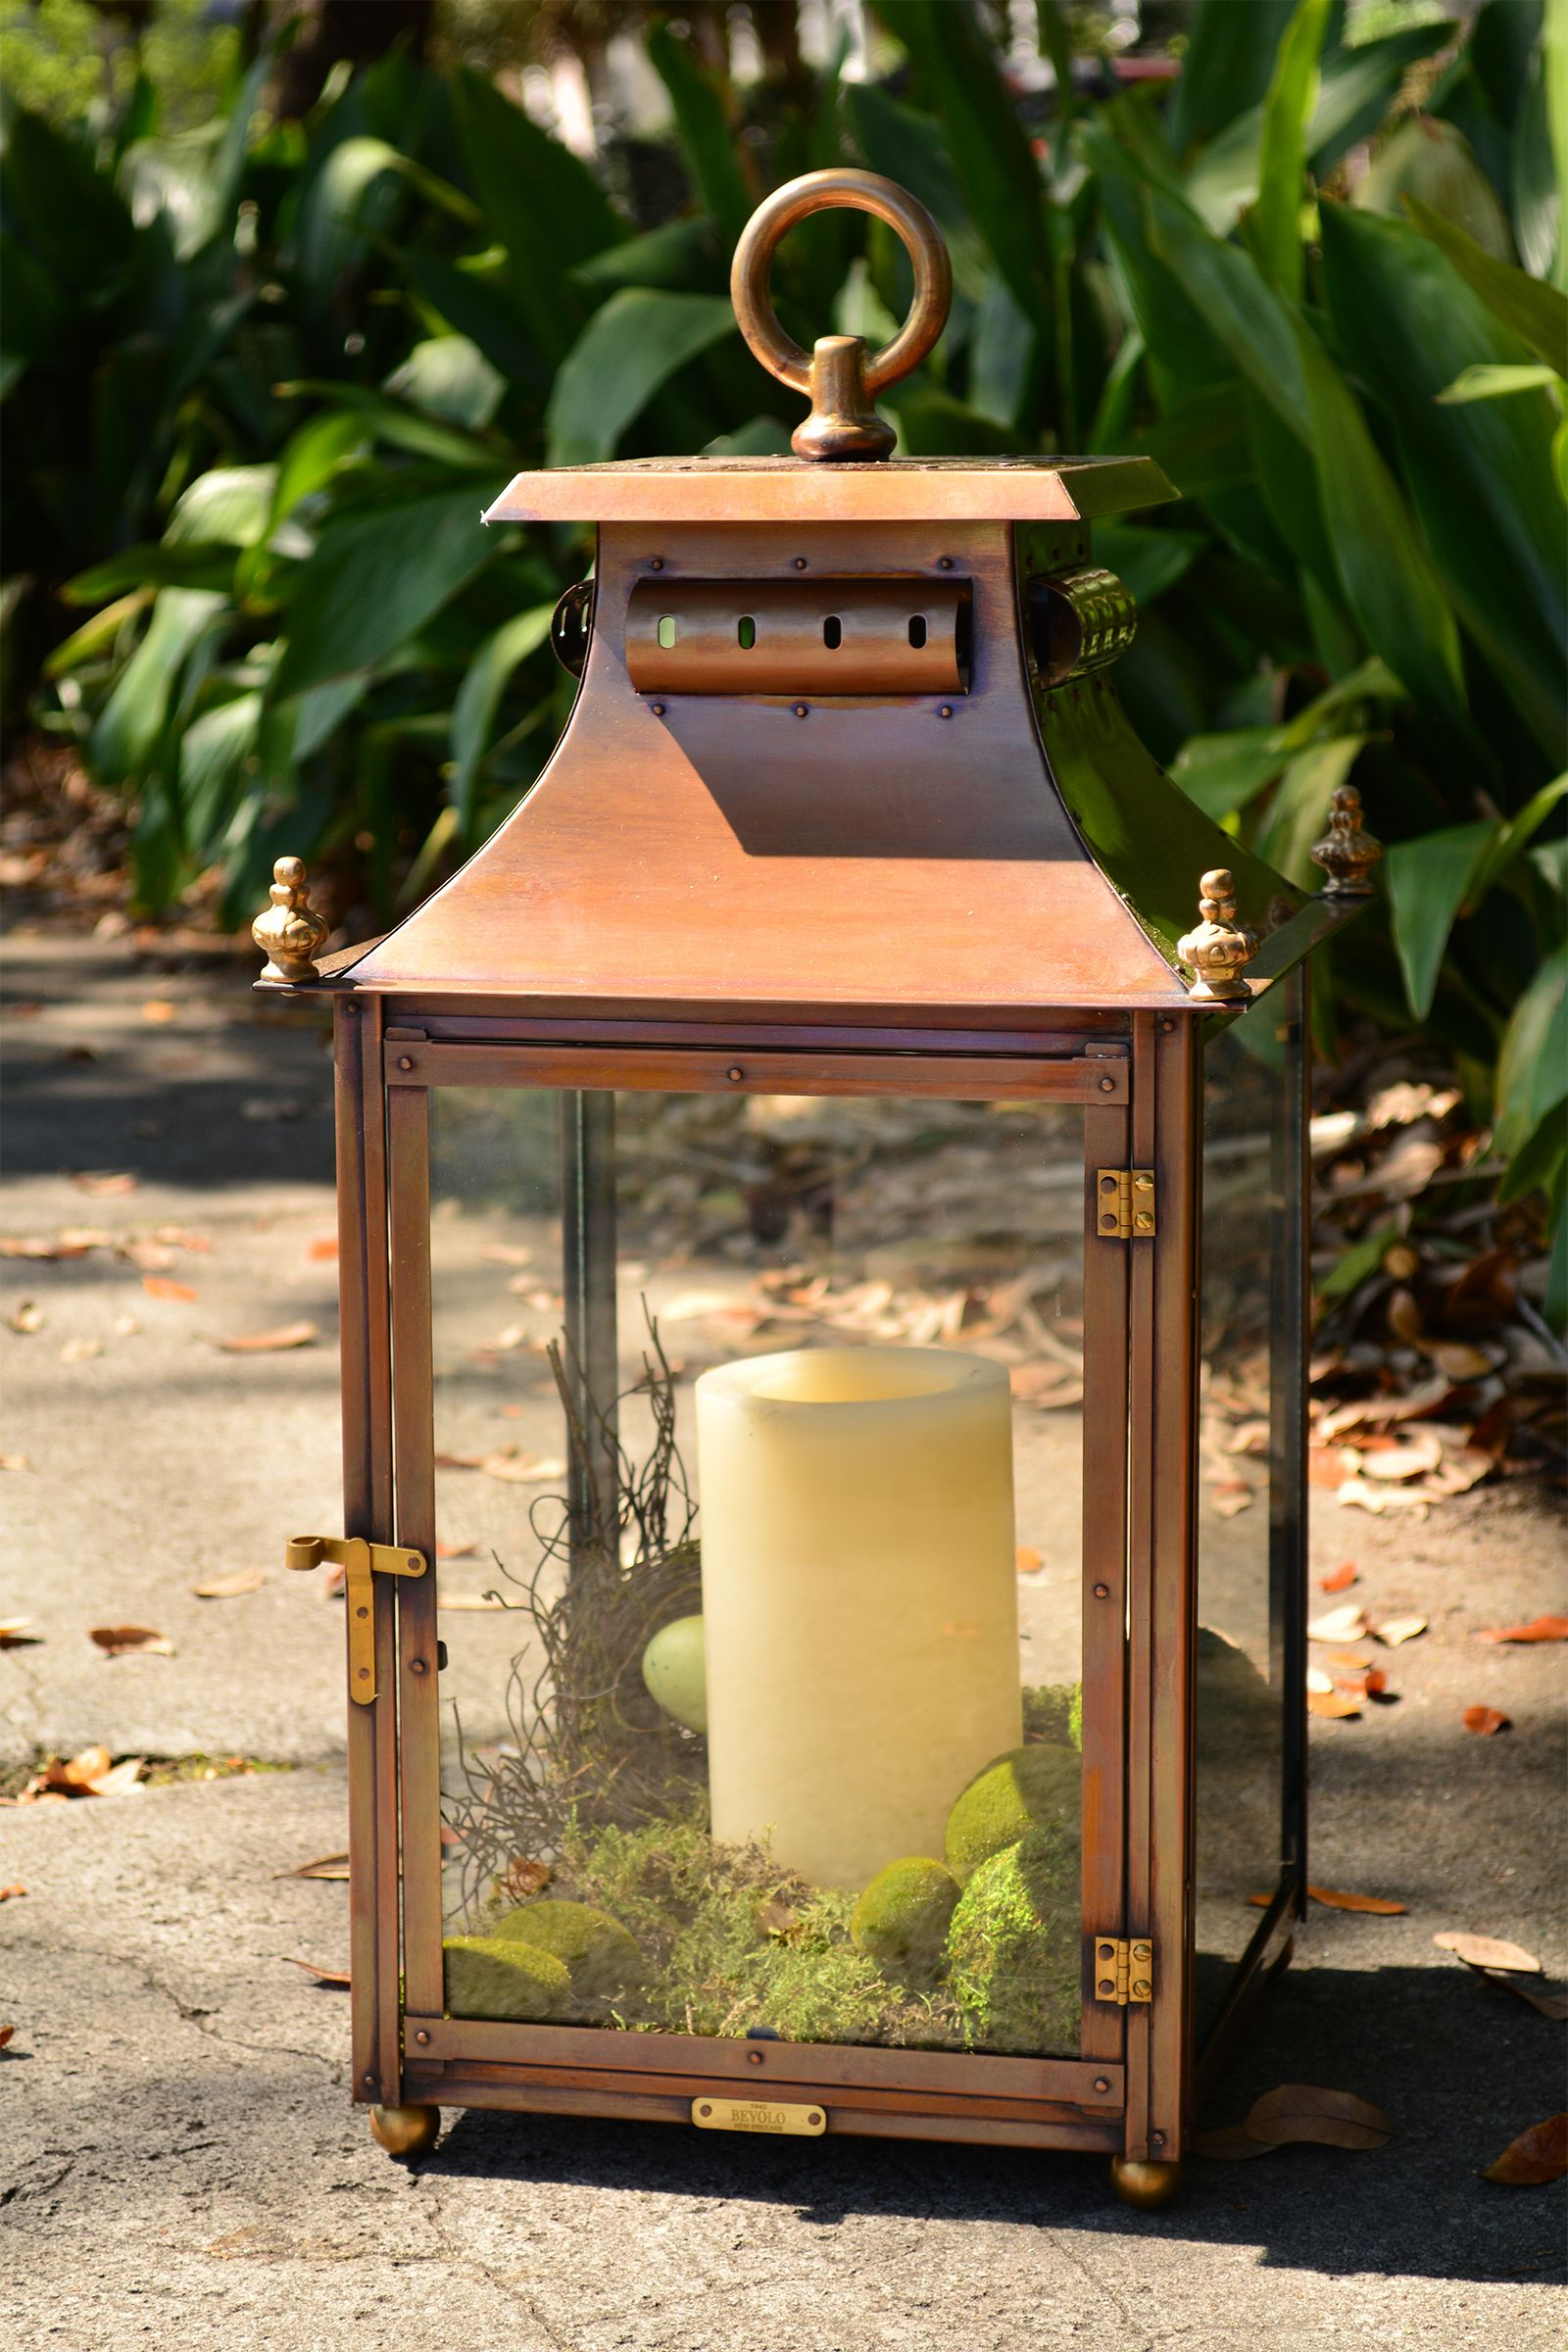 New Arrival The Highland Park Pool House Lantern From Bevolo Copper Lighting Bevolo Patio Lanterns